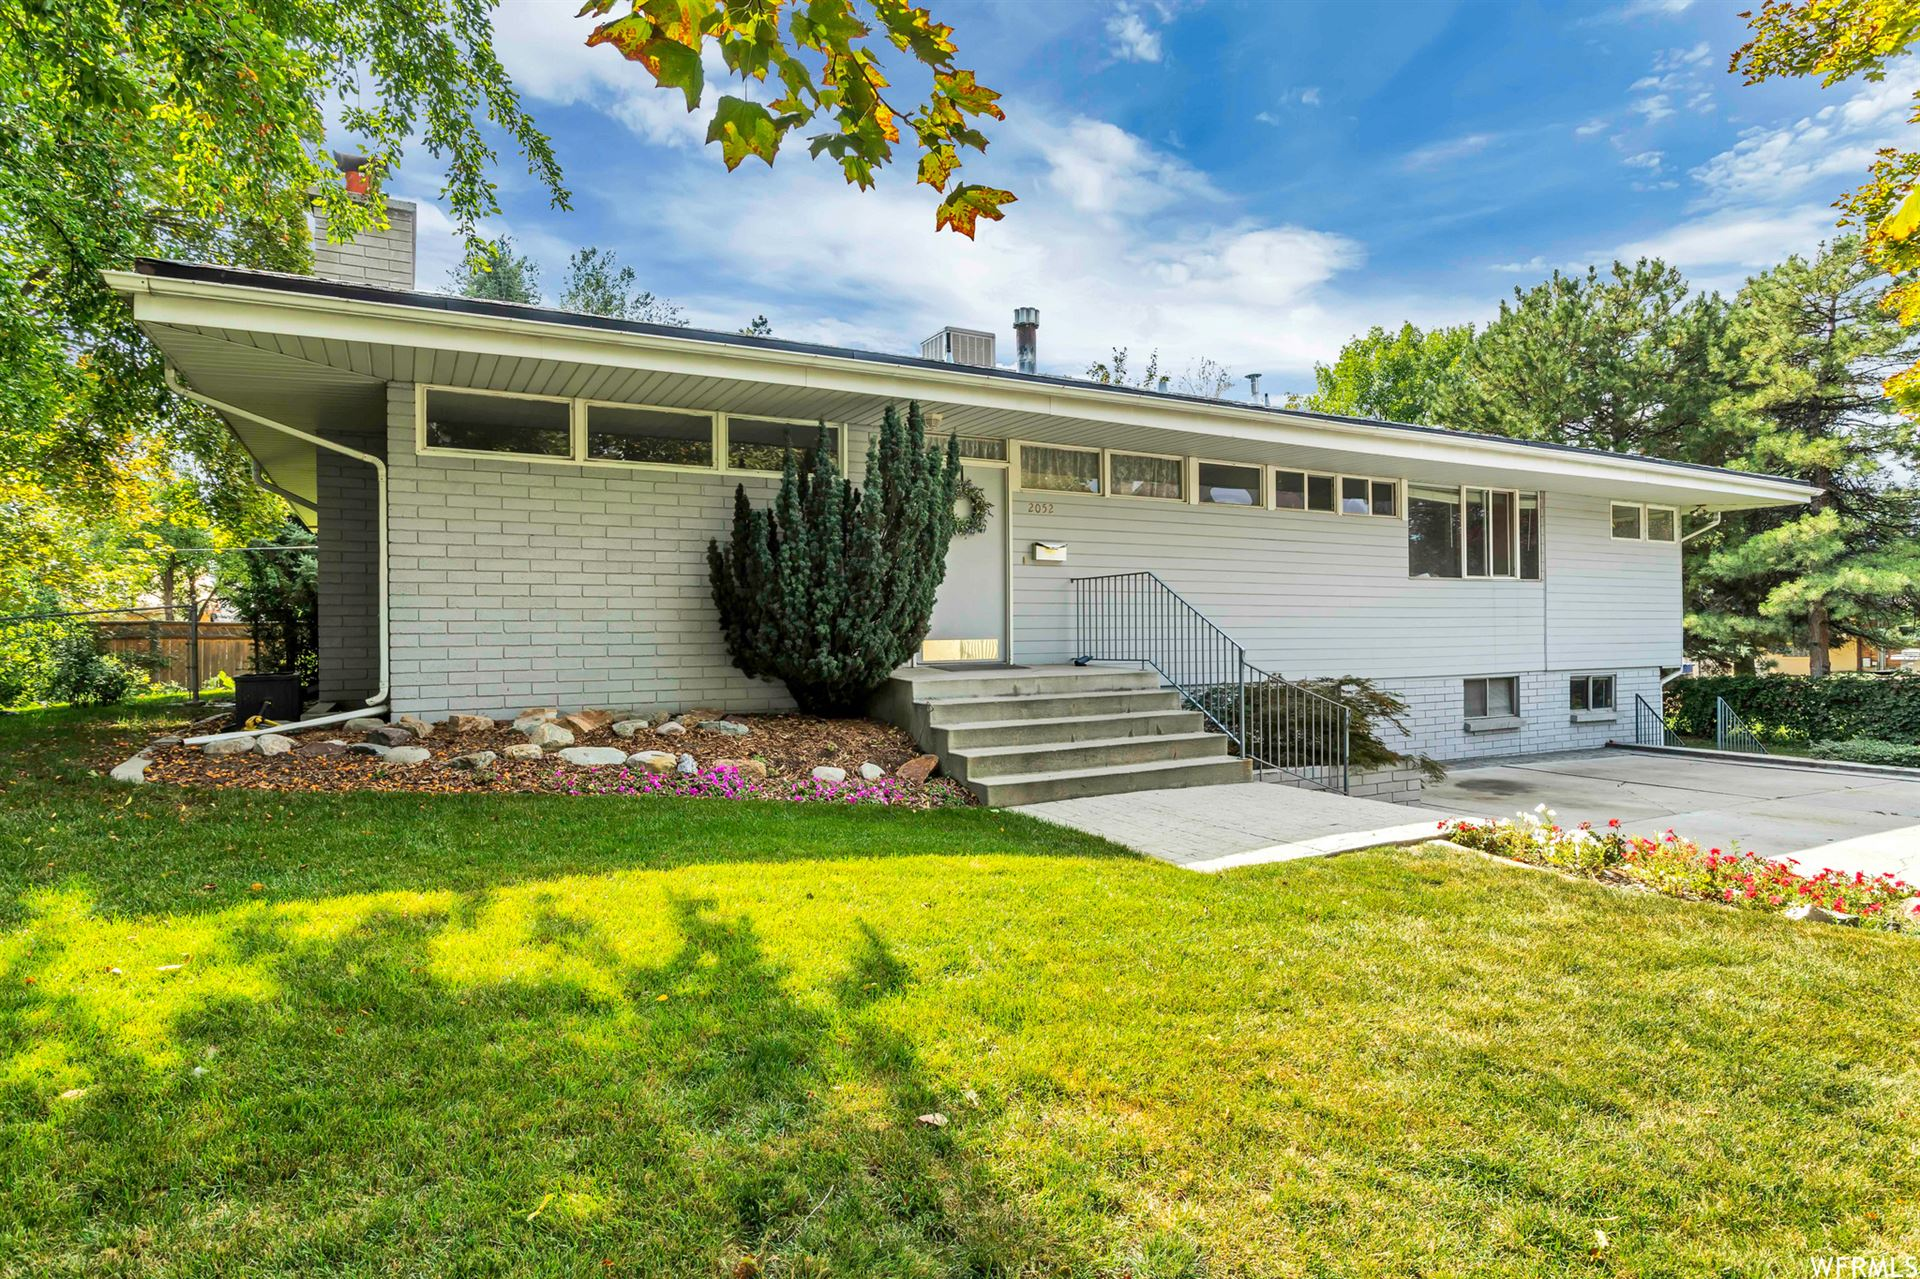 Photo of 2052 E SYCAMORE LN, Holladay, UT 84117 (MLS # 1770995)